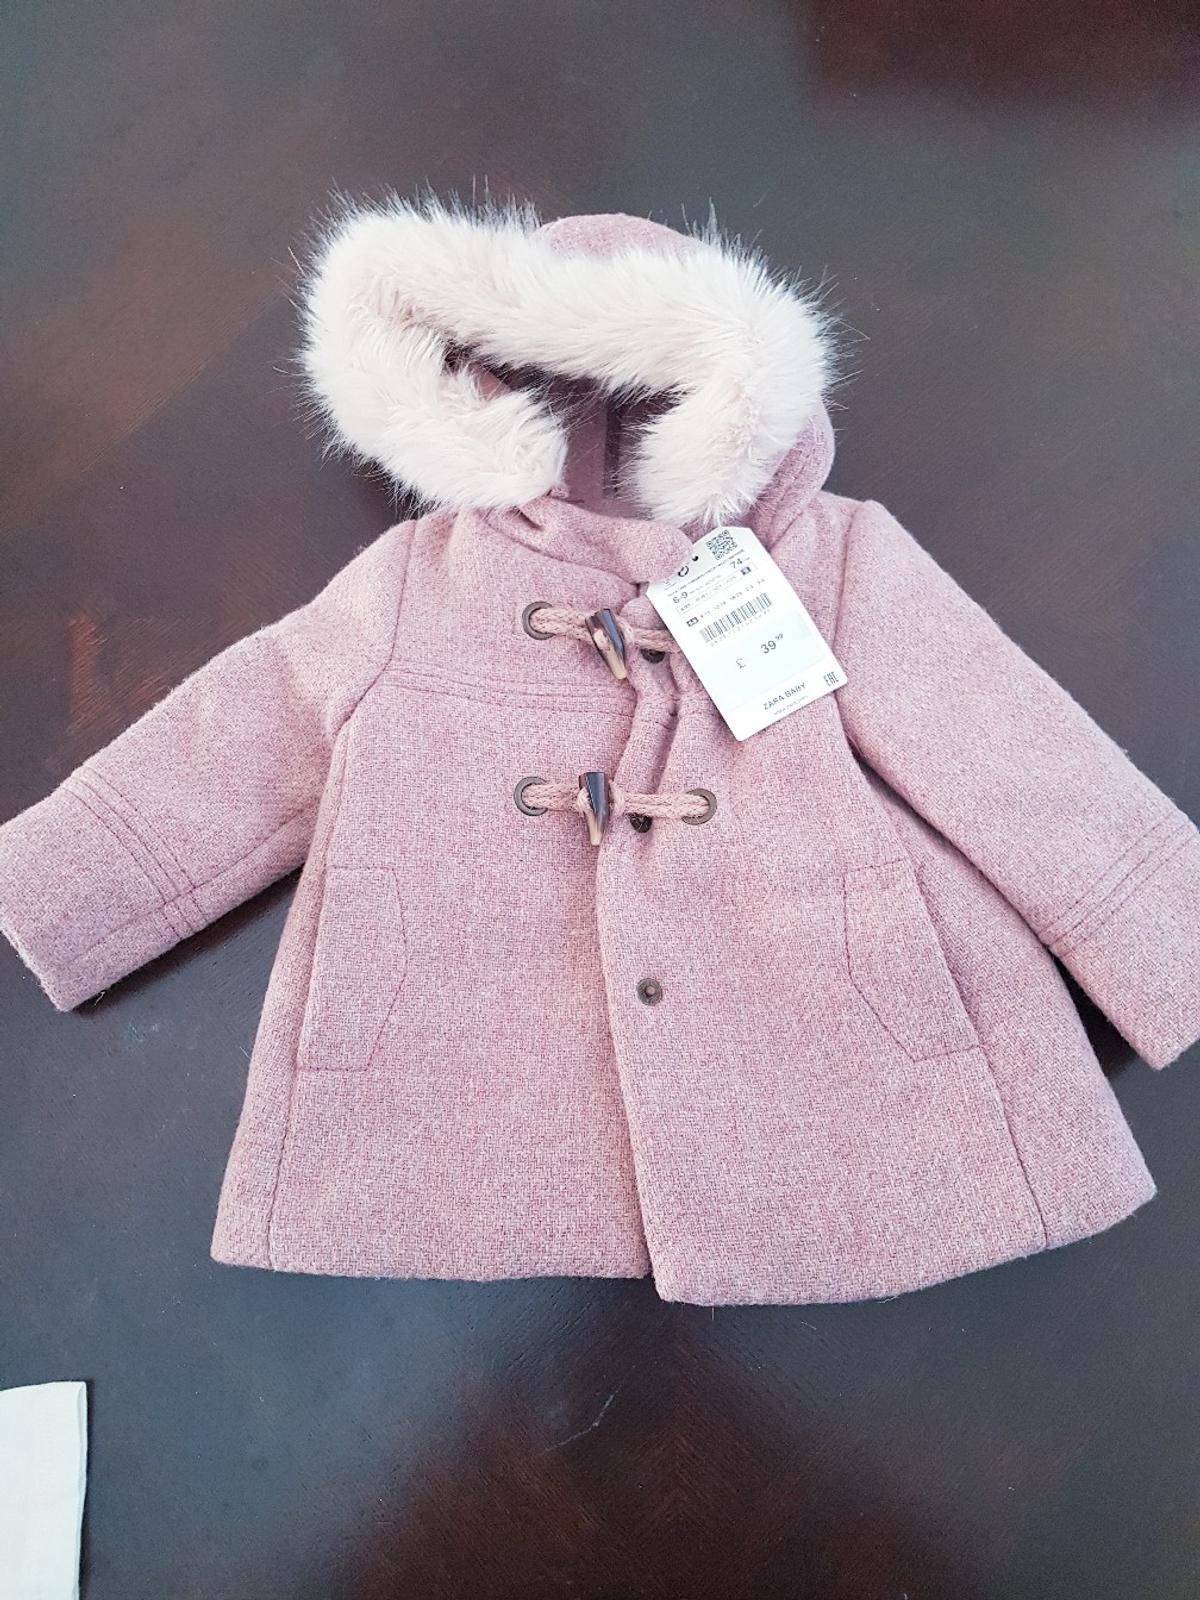 New Zara coat. 6-9 months with tags. no longer required